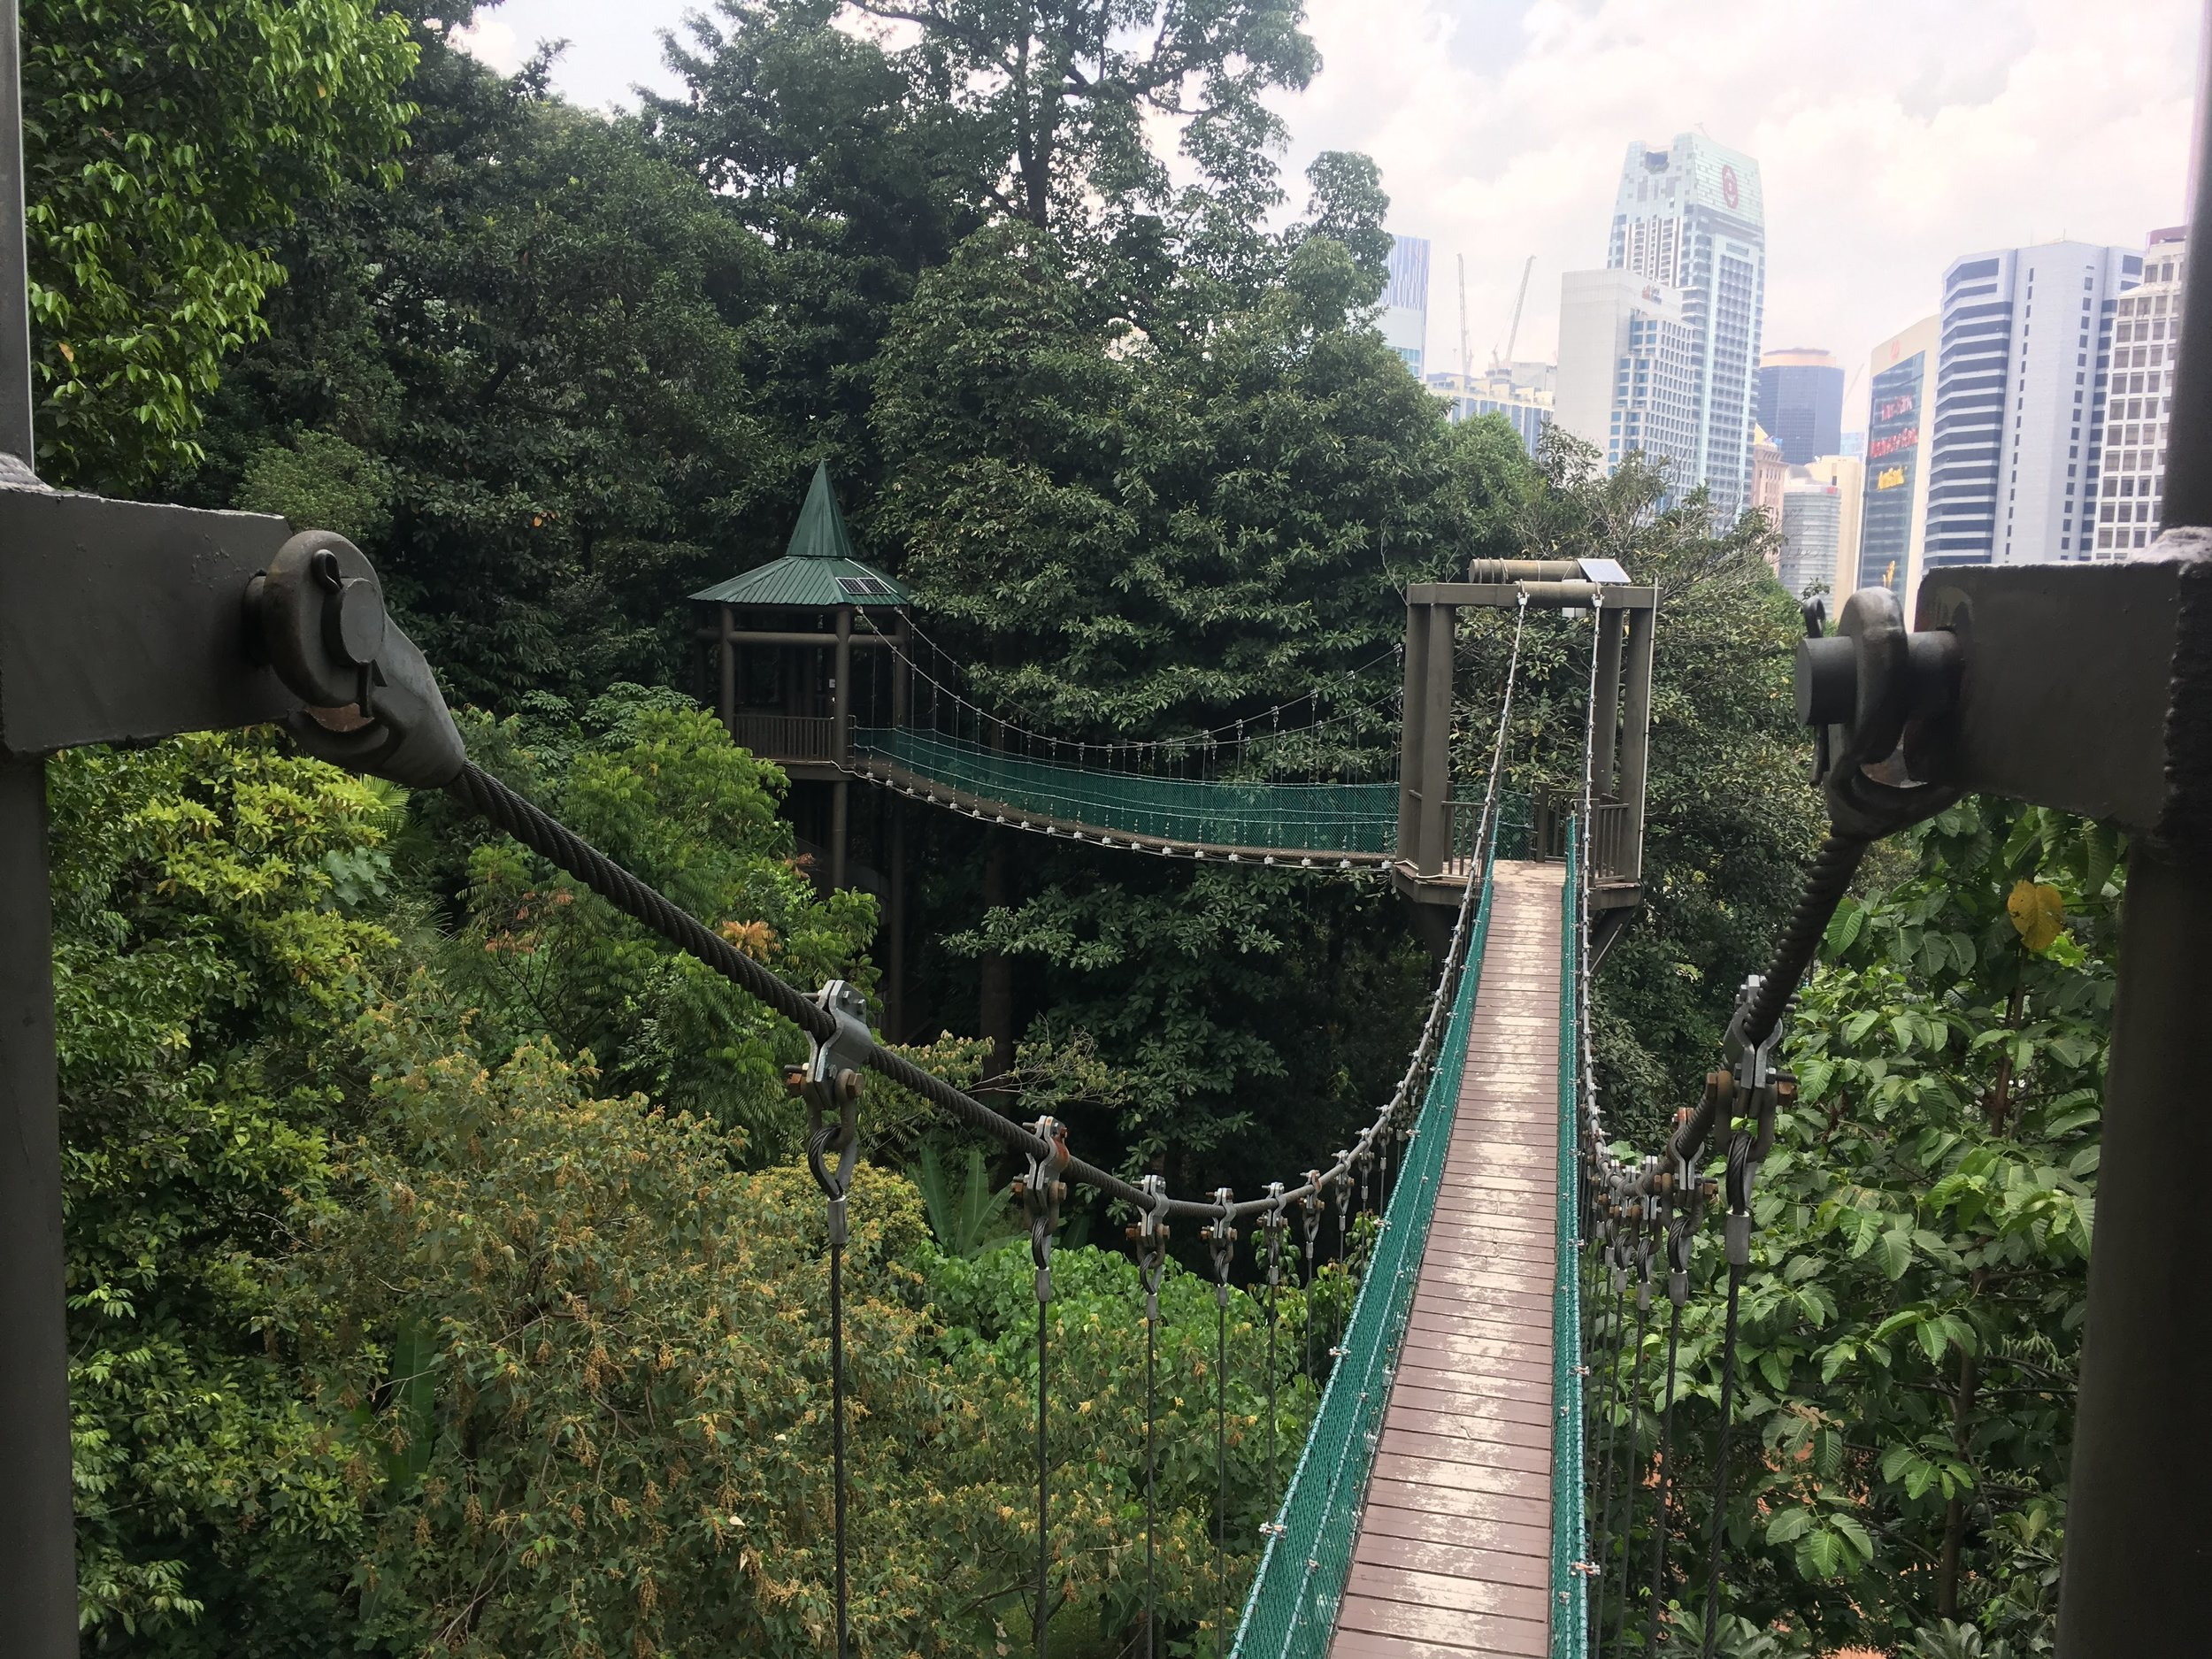 the Canopy Walk is a series of towers and connected bridges